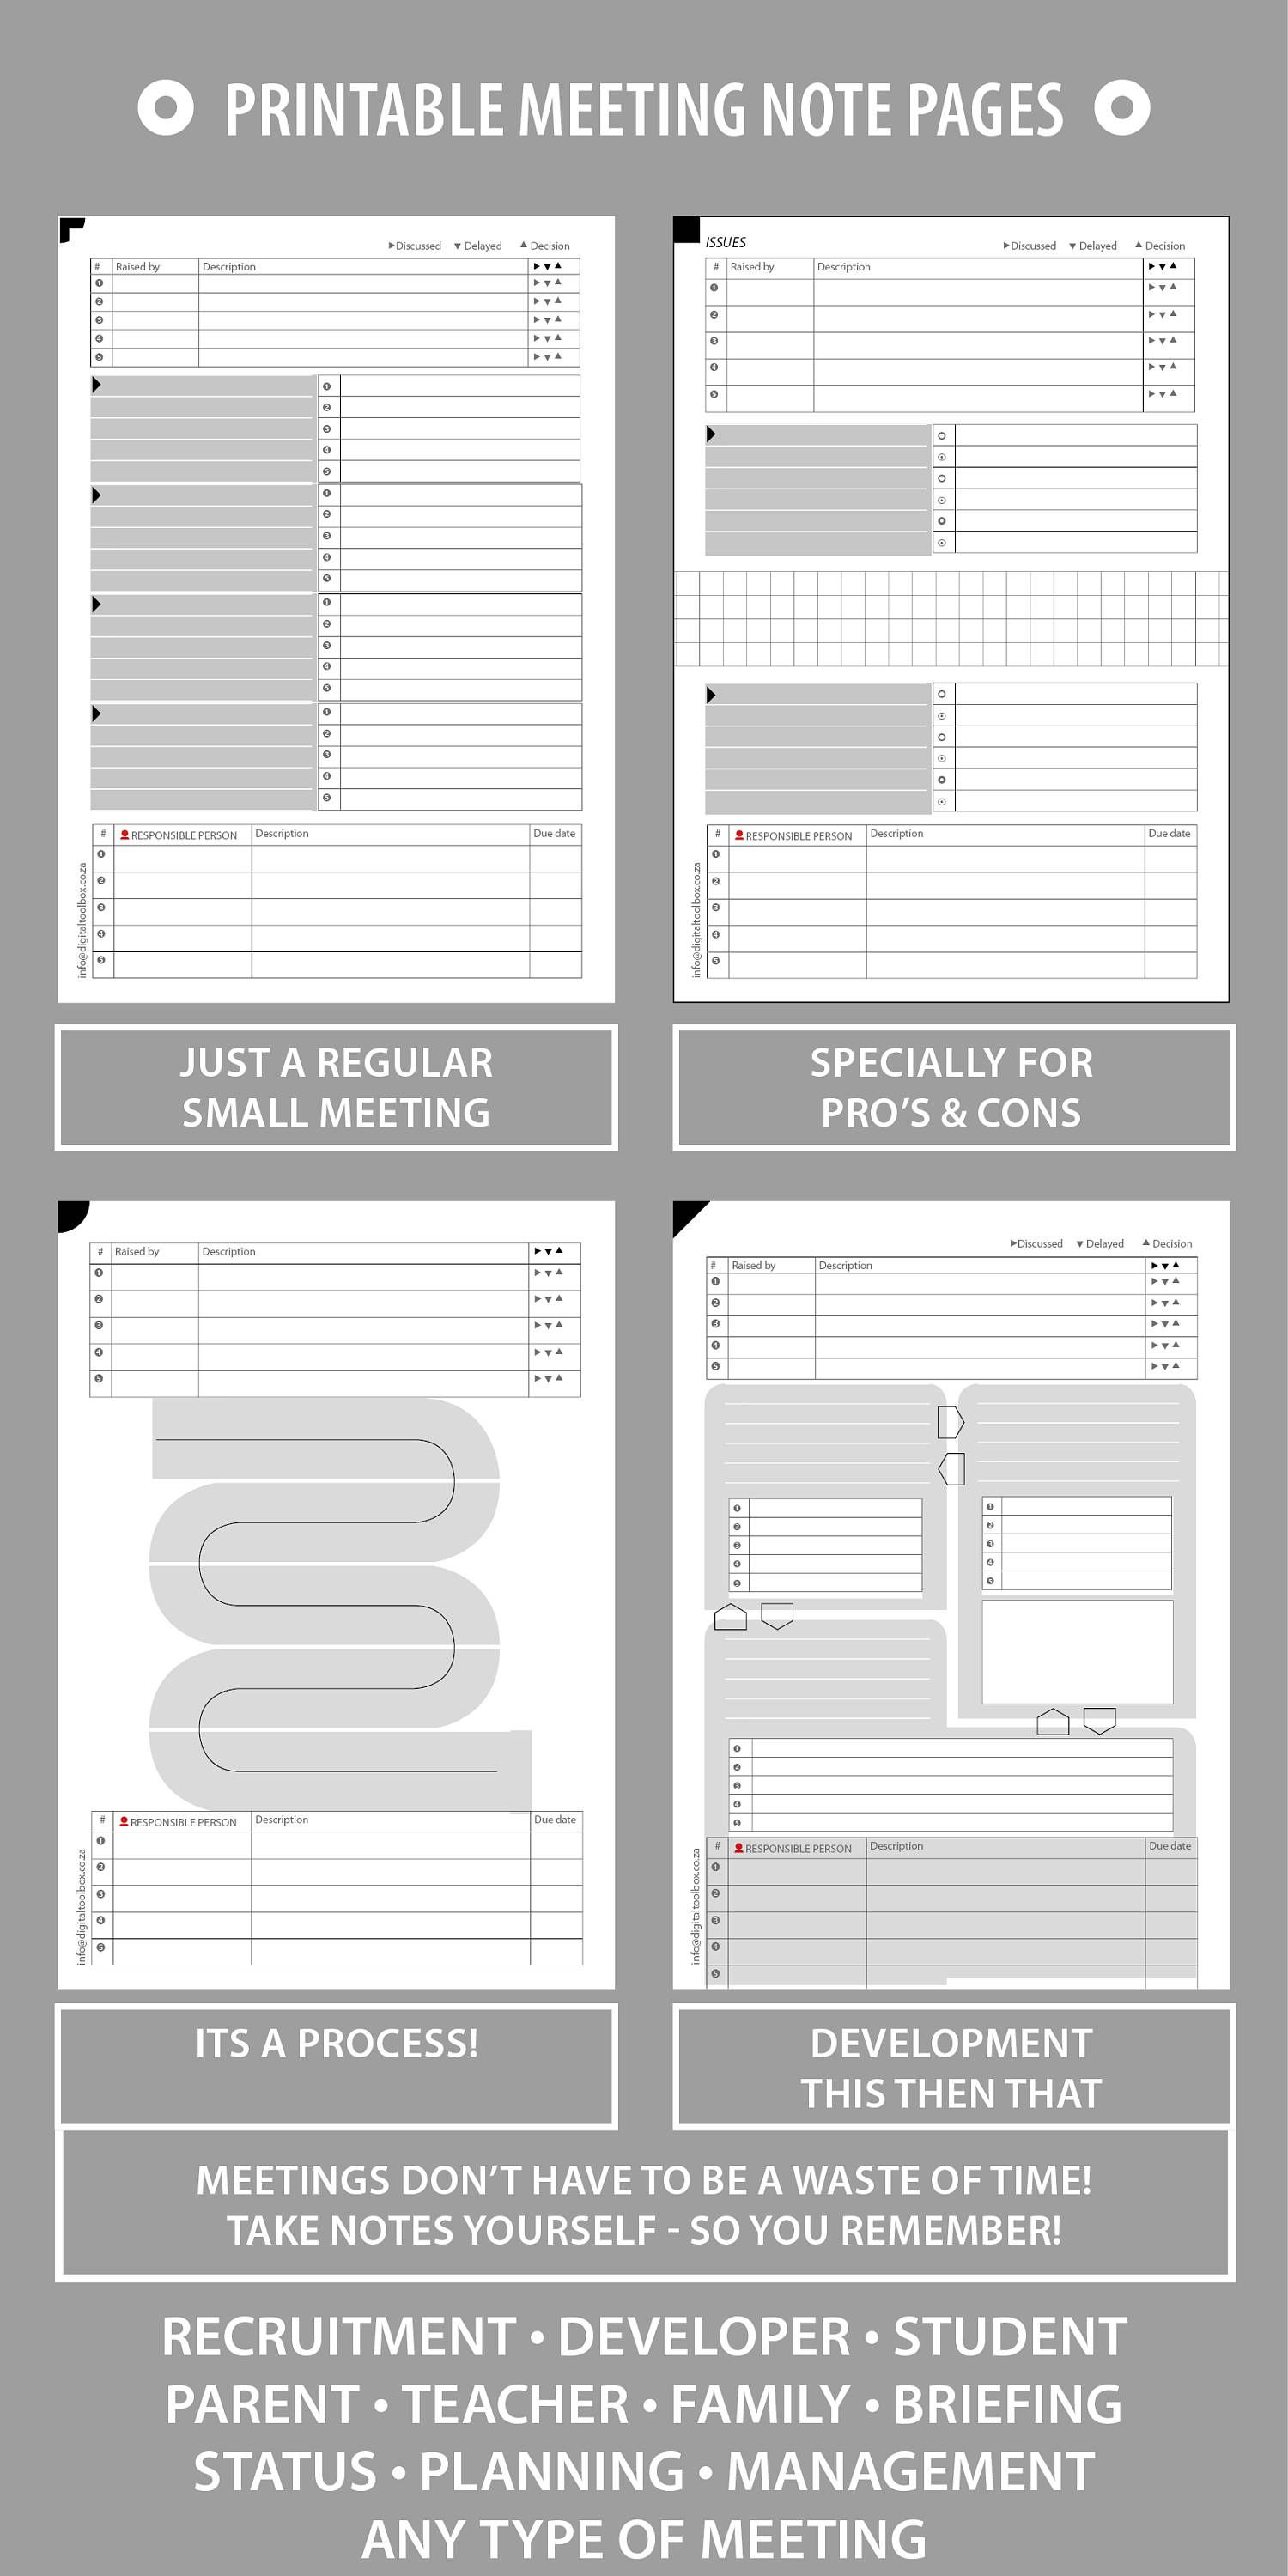 Printable Meeting Notes Agenda Record For Small Businesses Families Churches Stay Focused